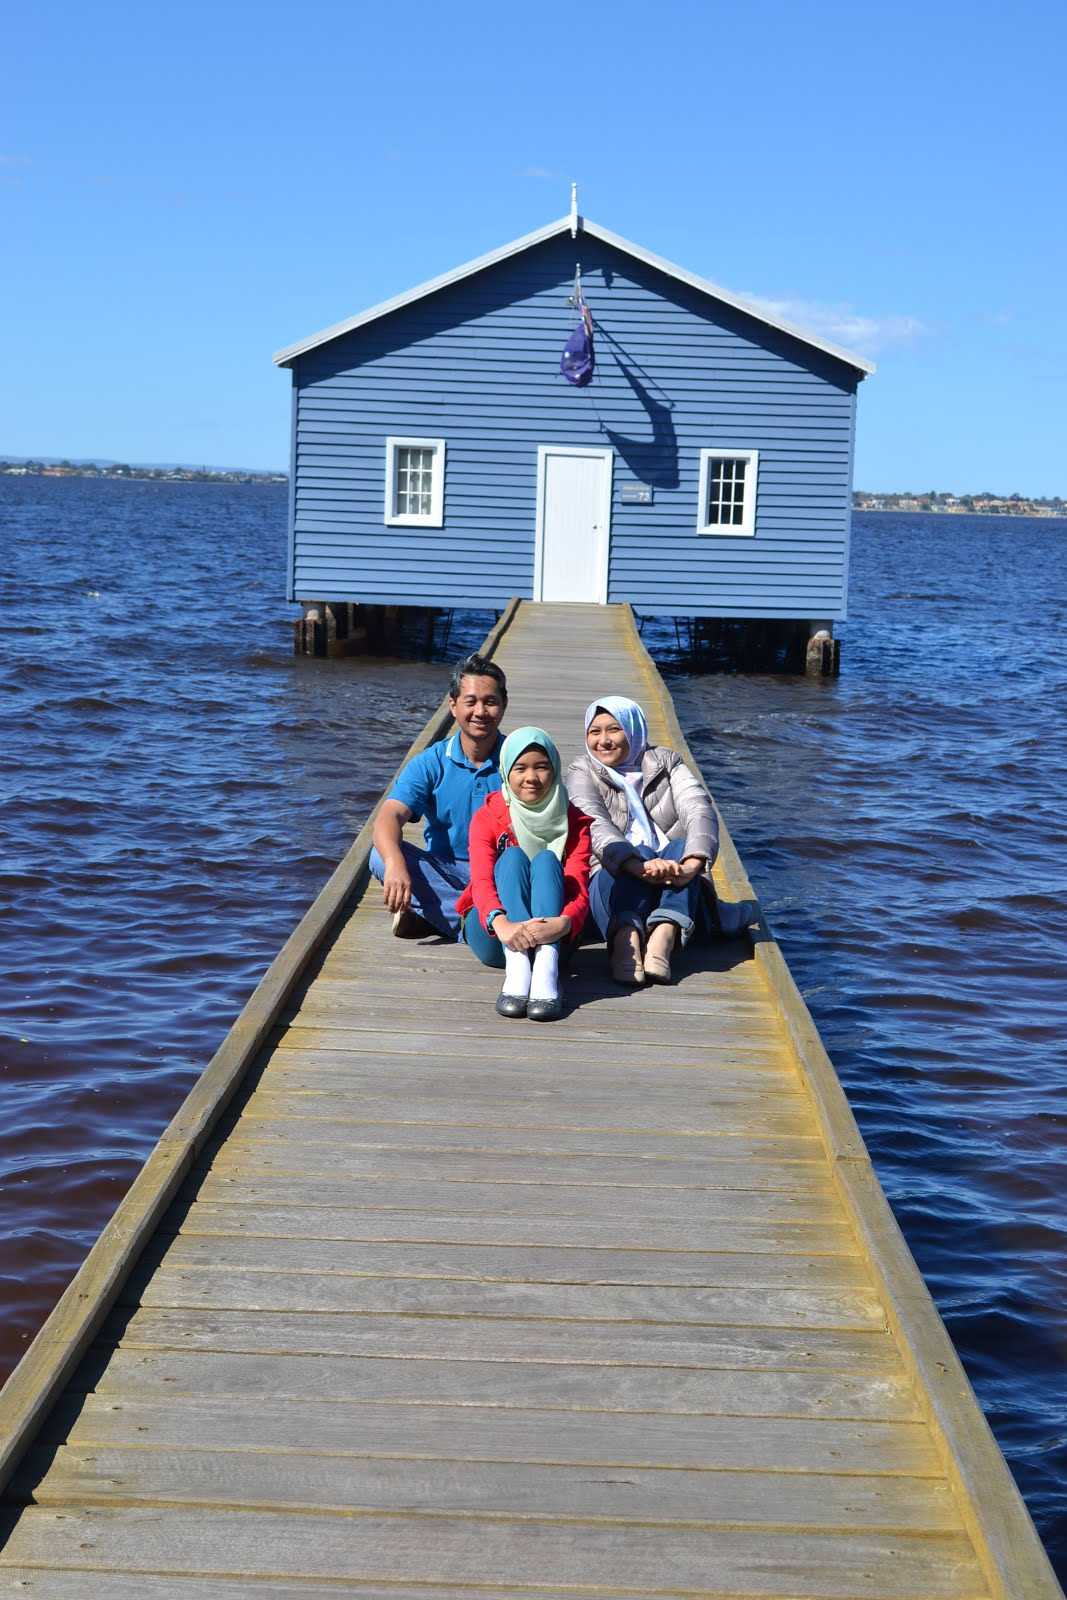 My family and I @ Perth, Australia